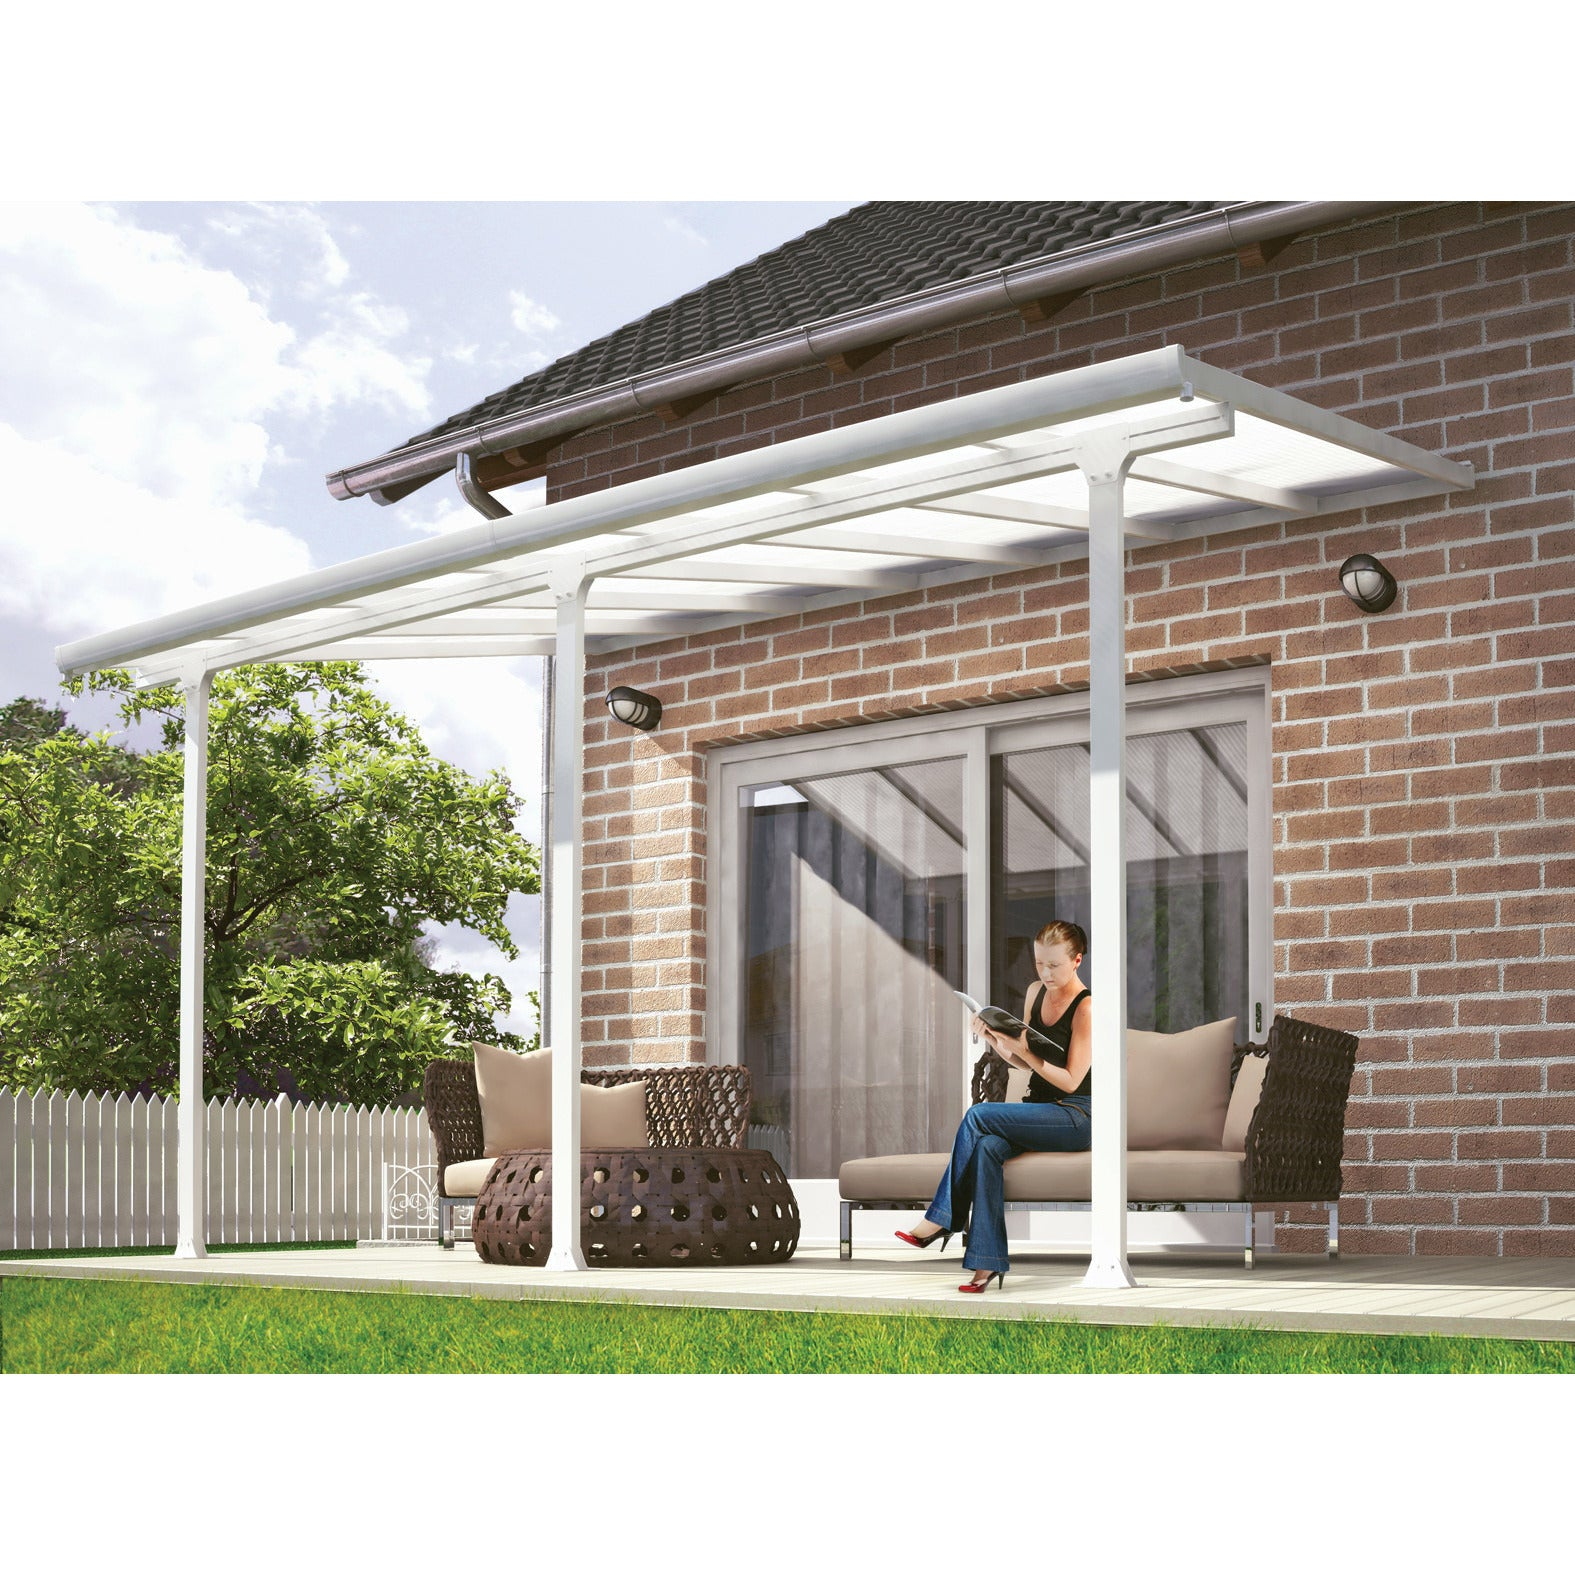 alumawood unlimited handyman patio showcase ceiling install covers samples cover fan and